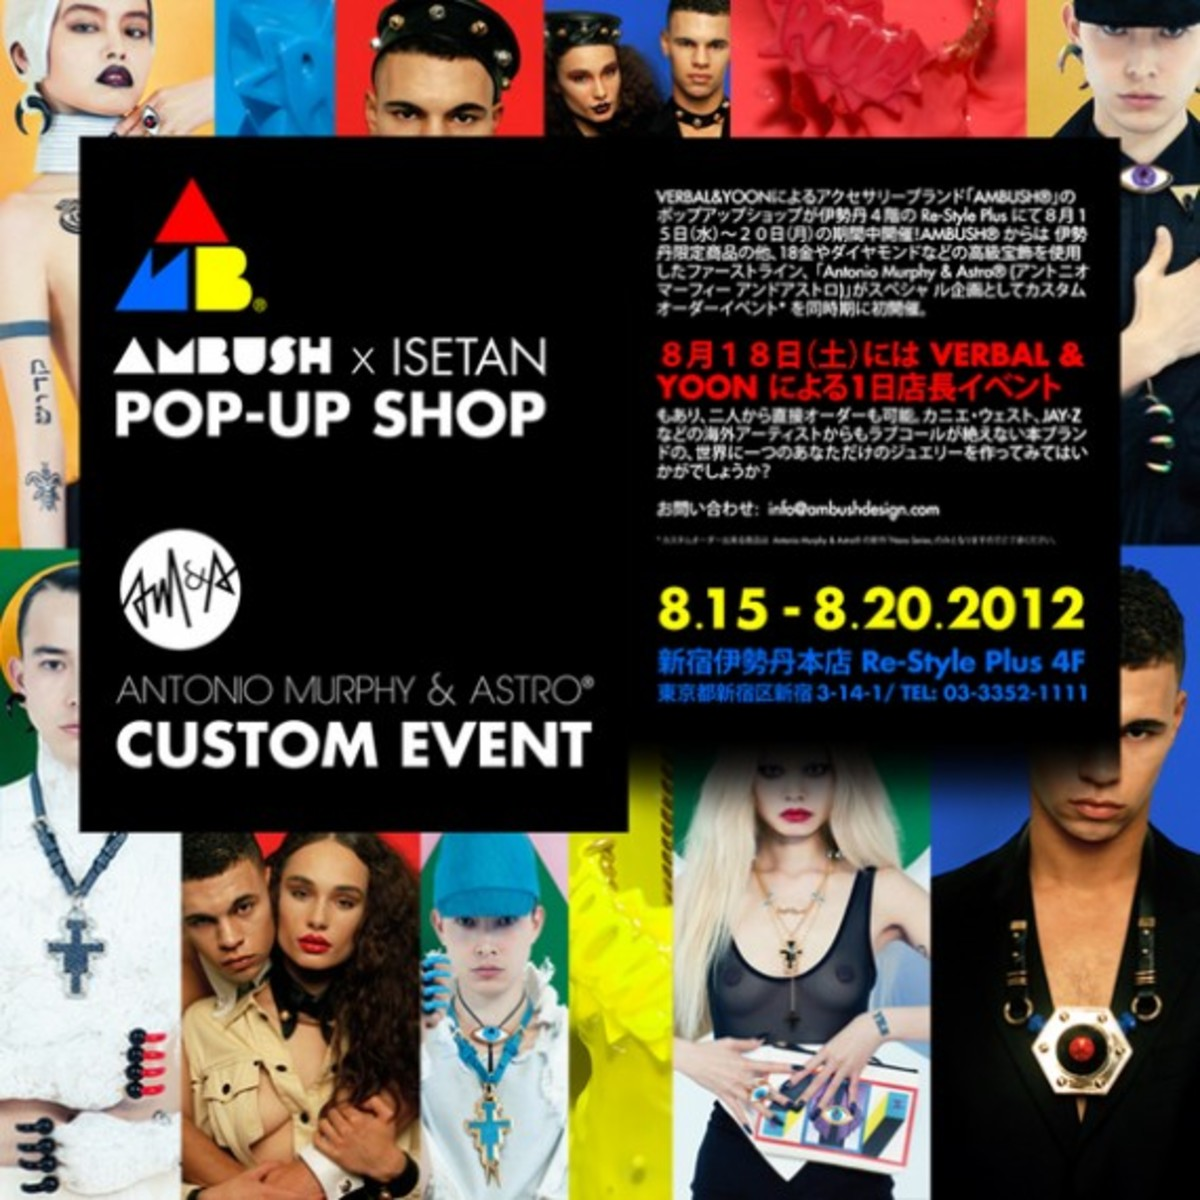 ambush-isetan-pop-up-shop-01